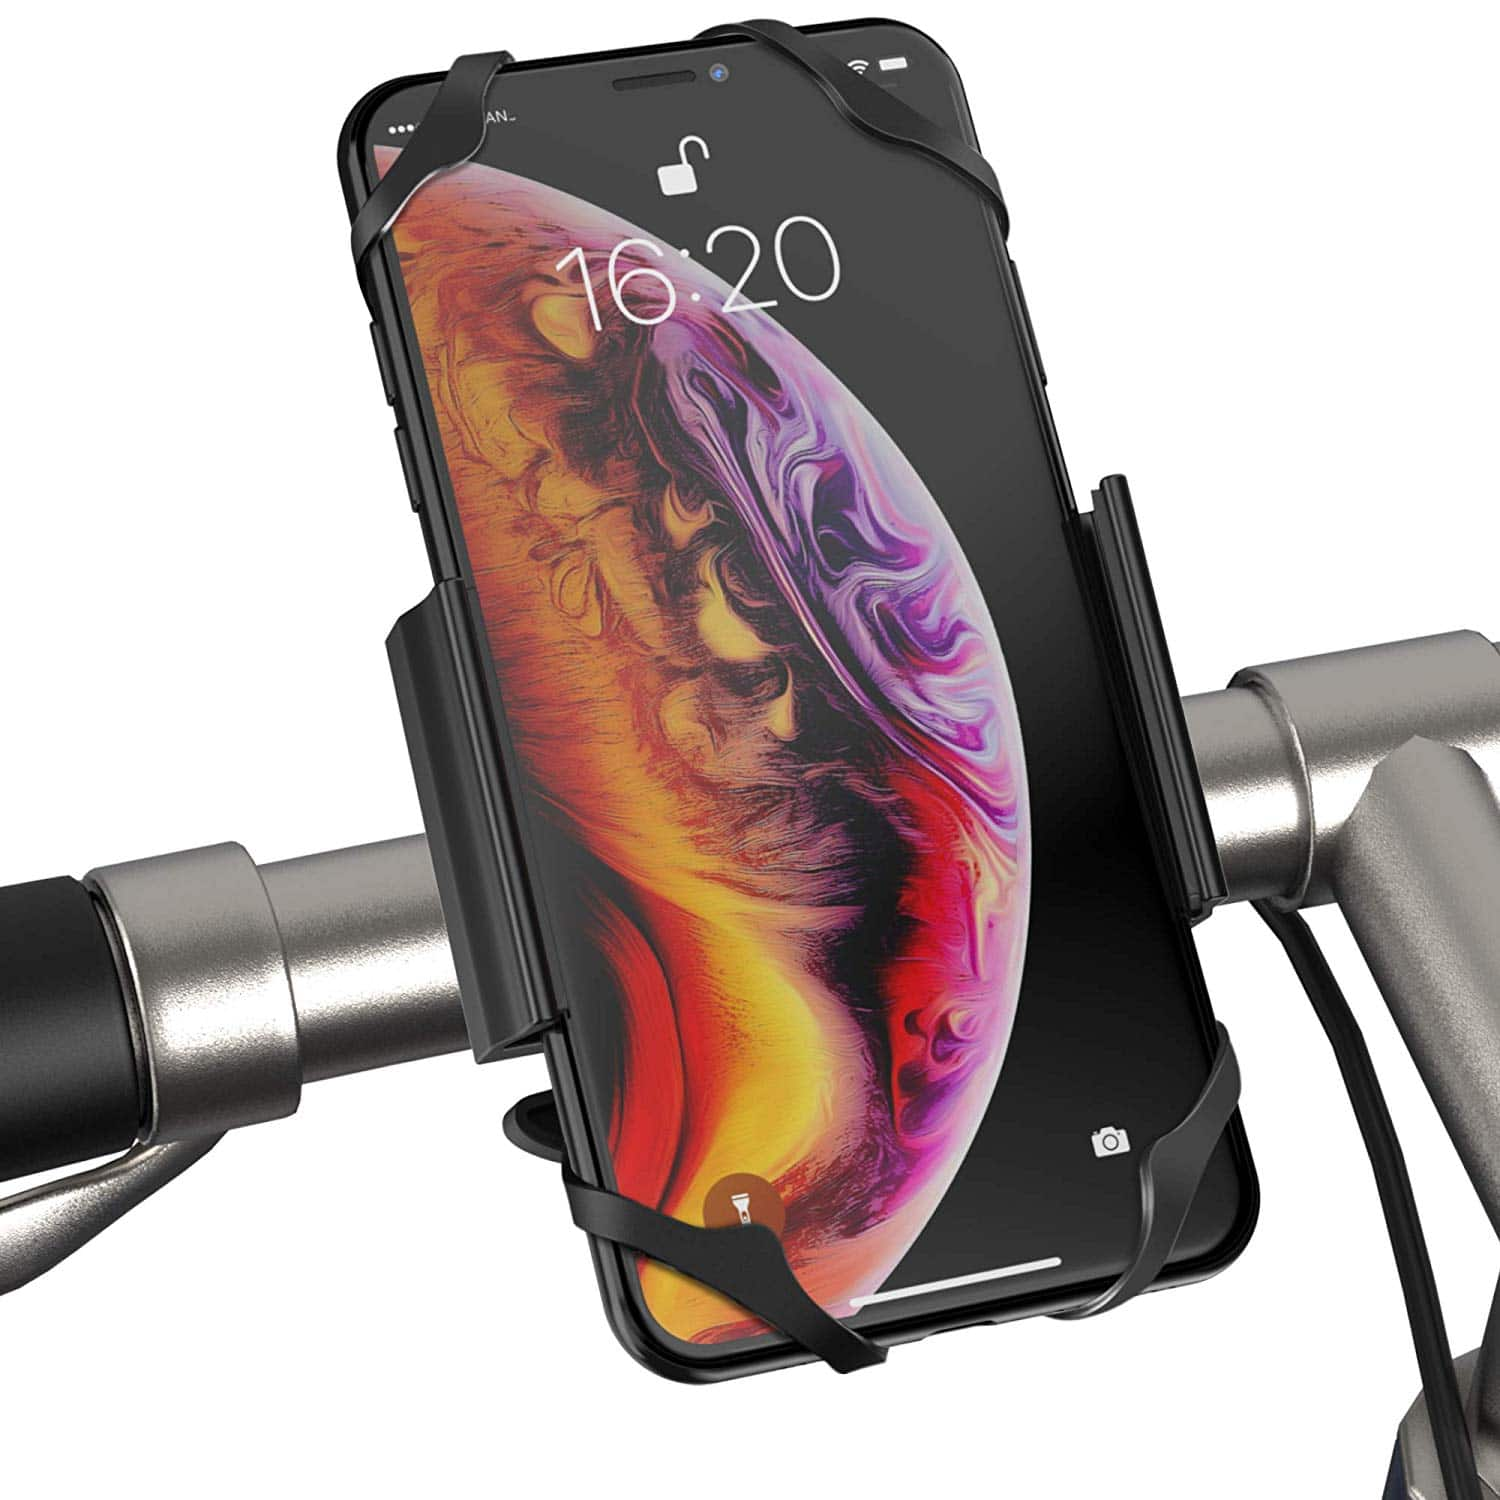 IPOW Bike Phone Mount Holder with 360°Rotation, Strong Metal Base $7.49 AC FS with Prime @ Amazon